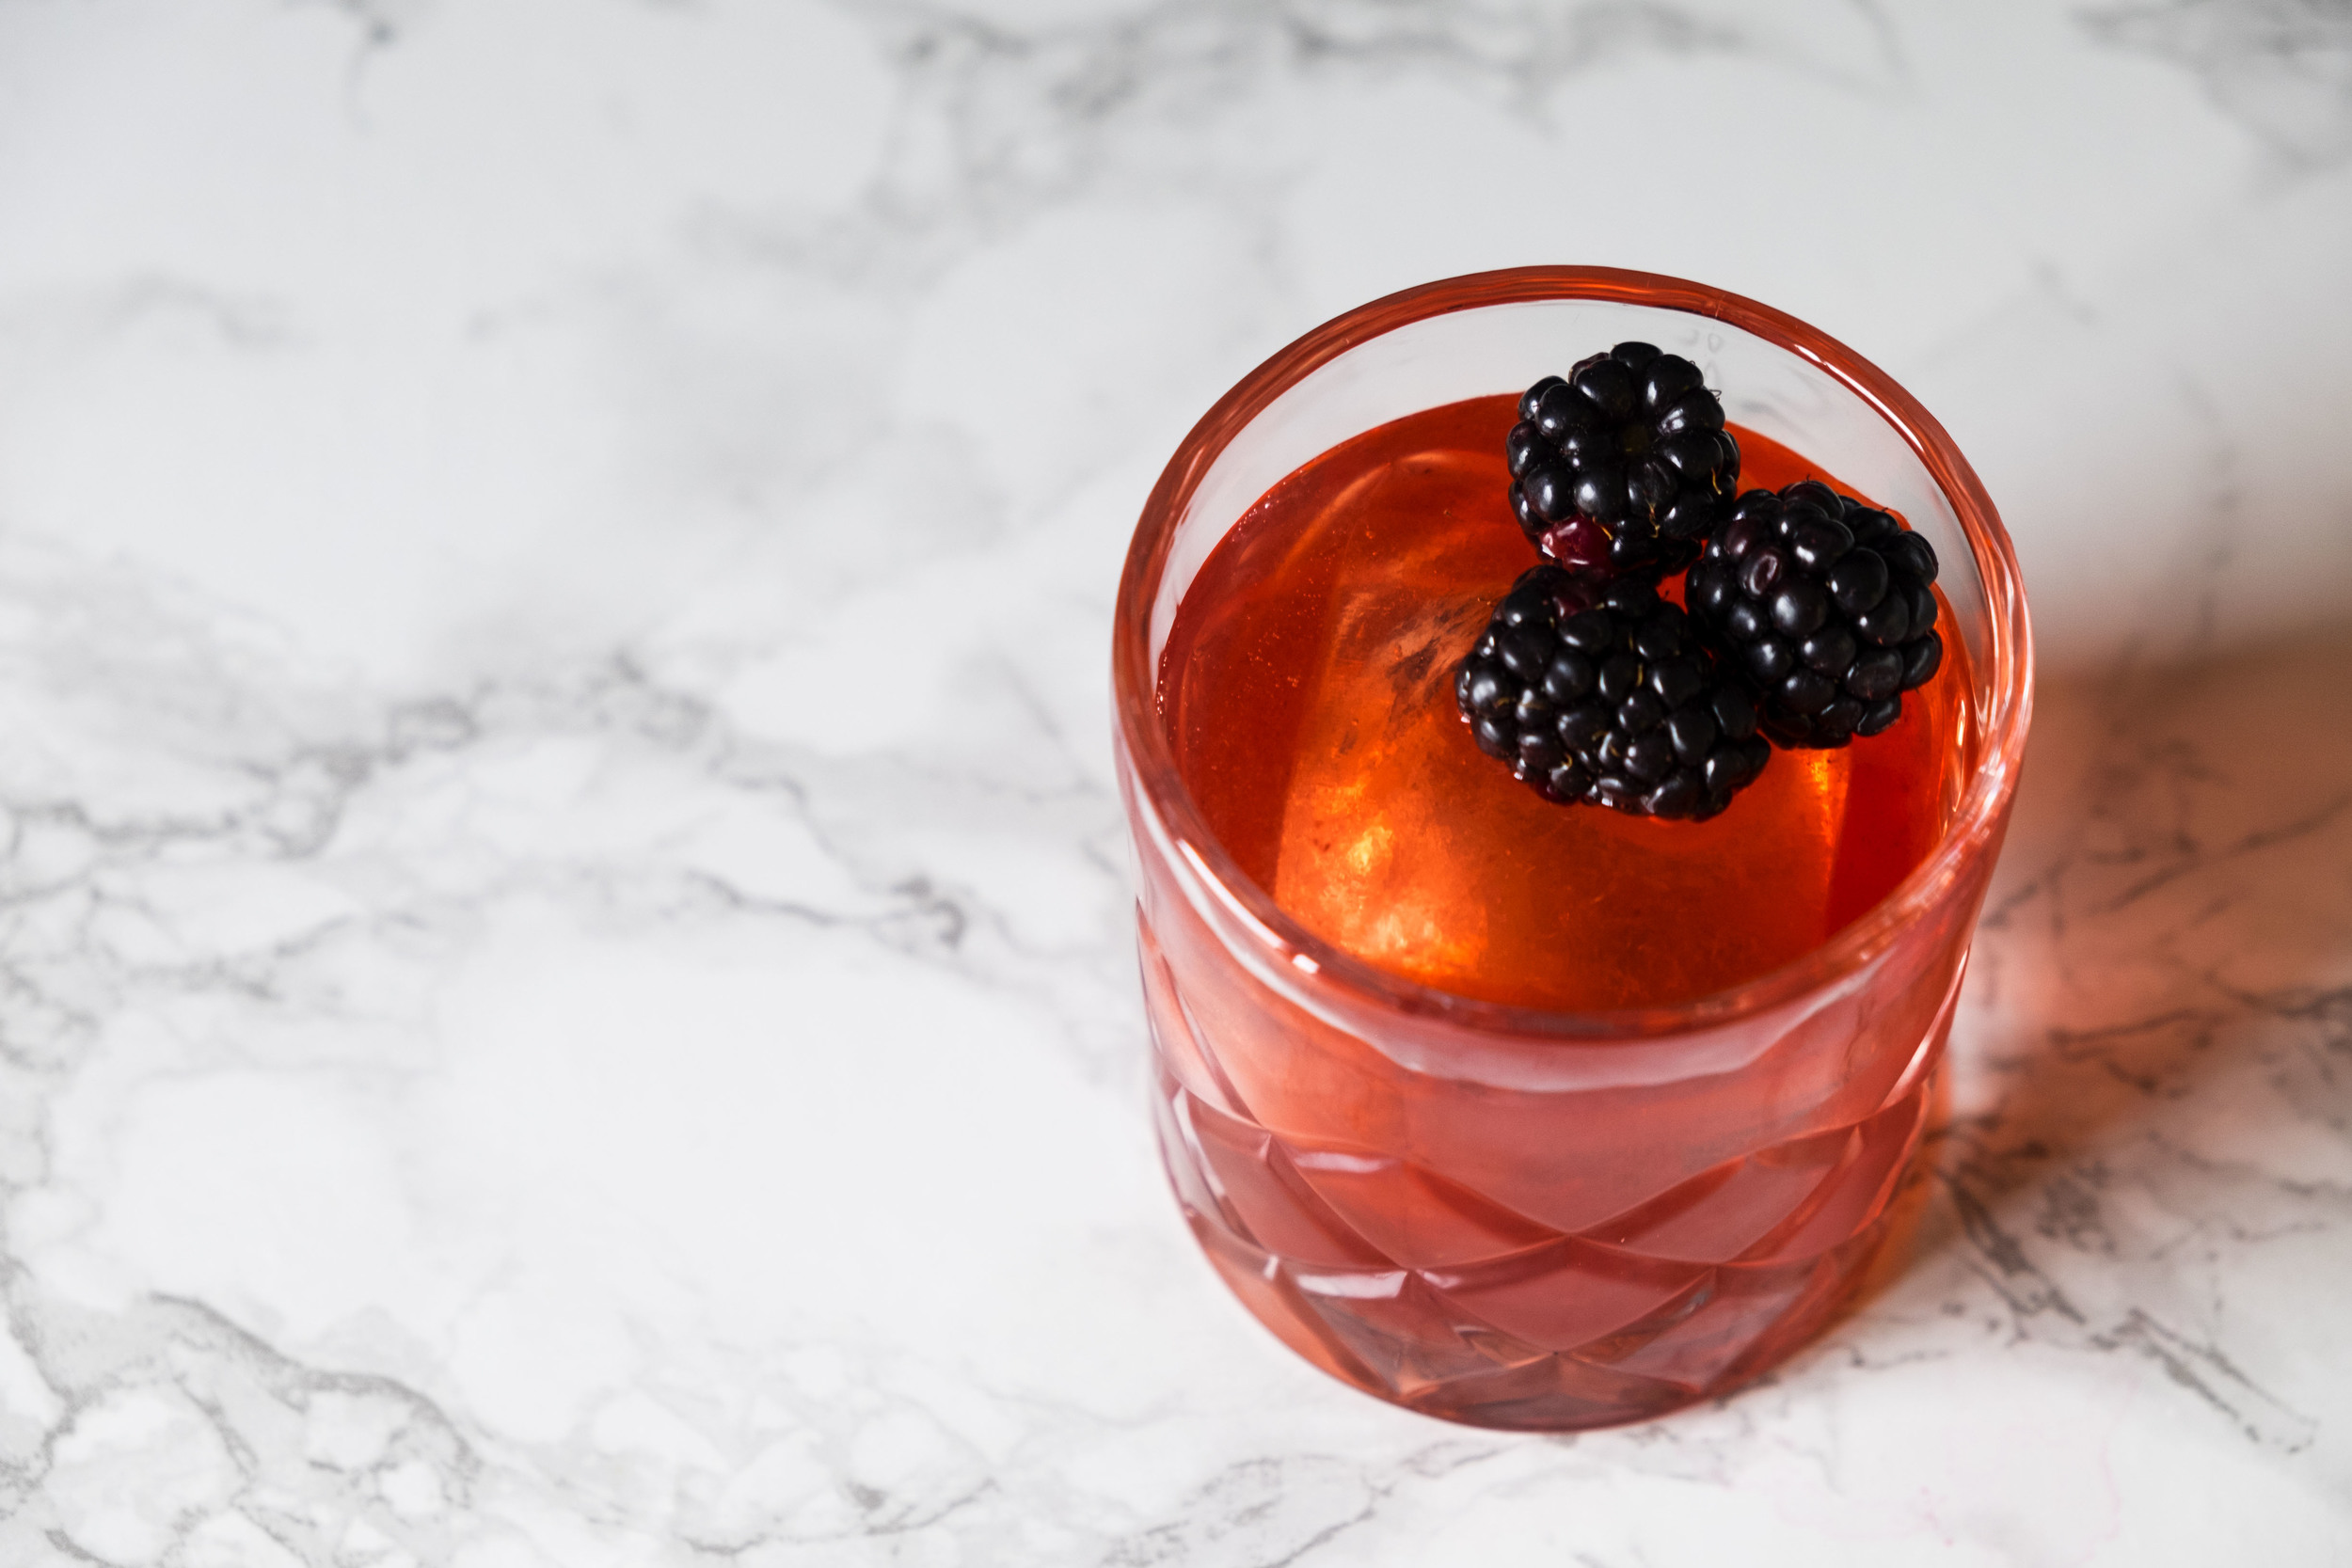 Blackberry Old Fashioned